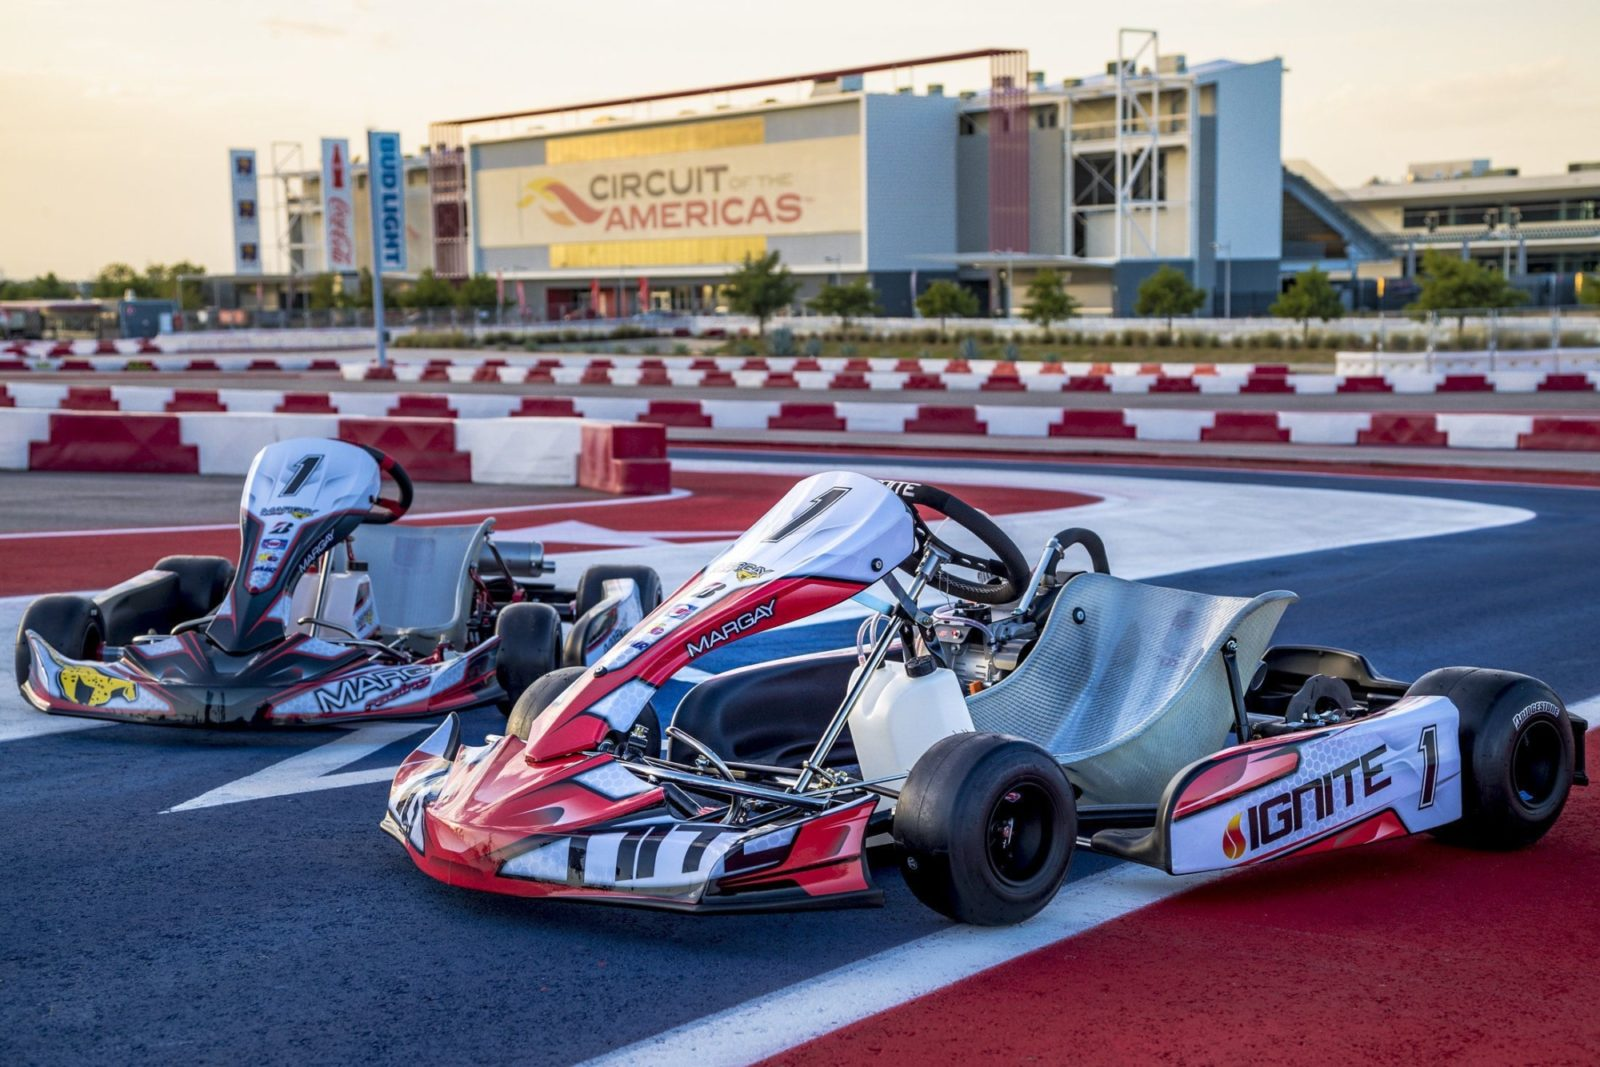 Margay Ignite karts sit on the asphalt of the Circuit of the Americas karting facility